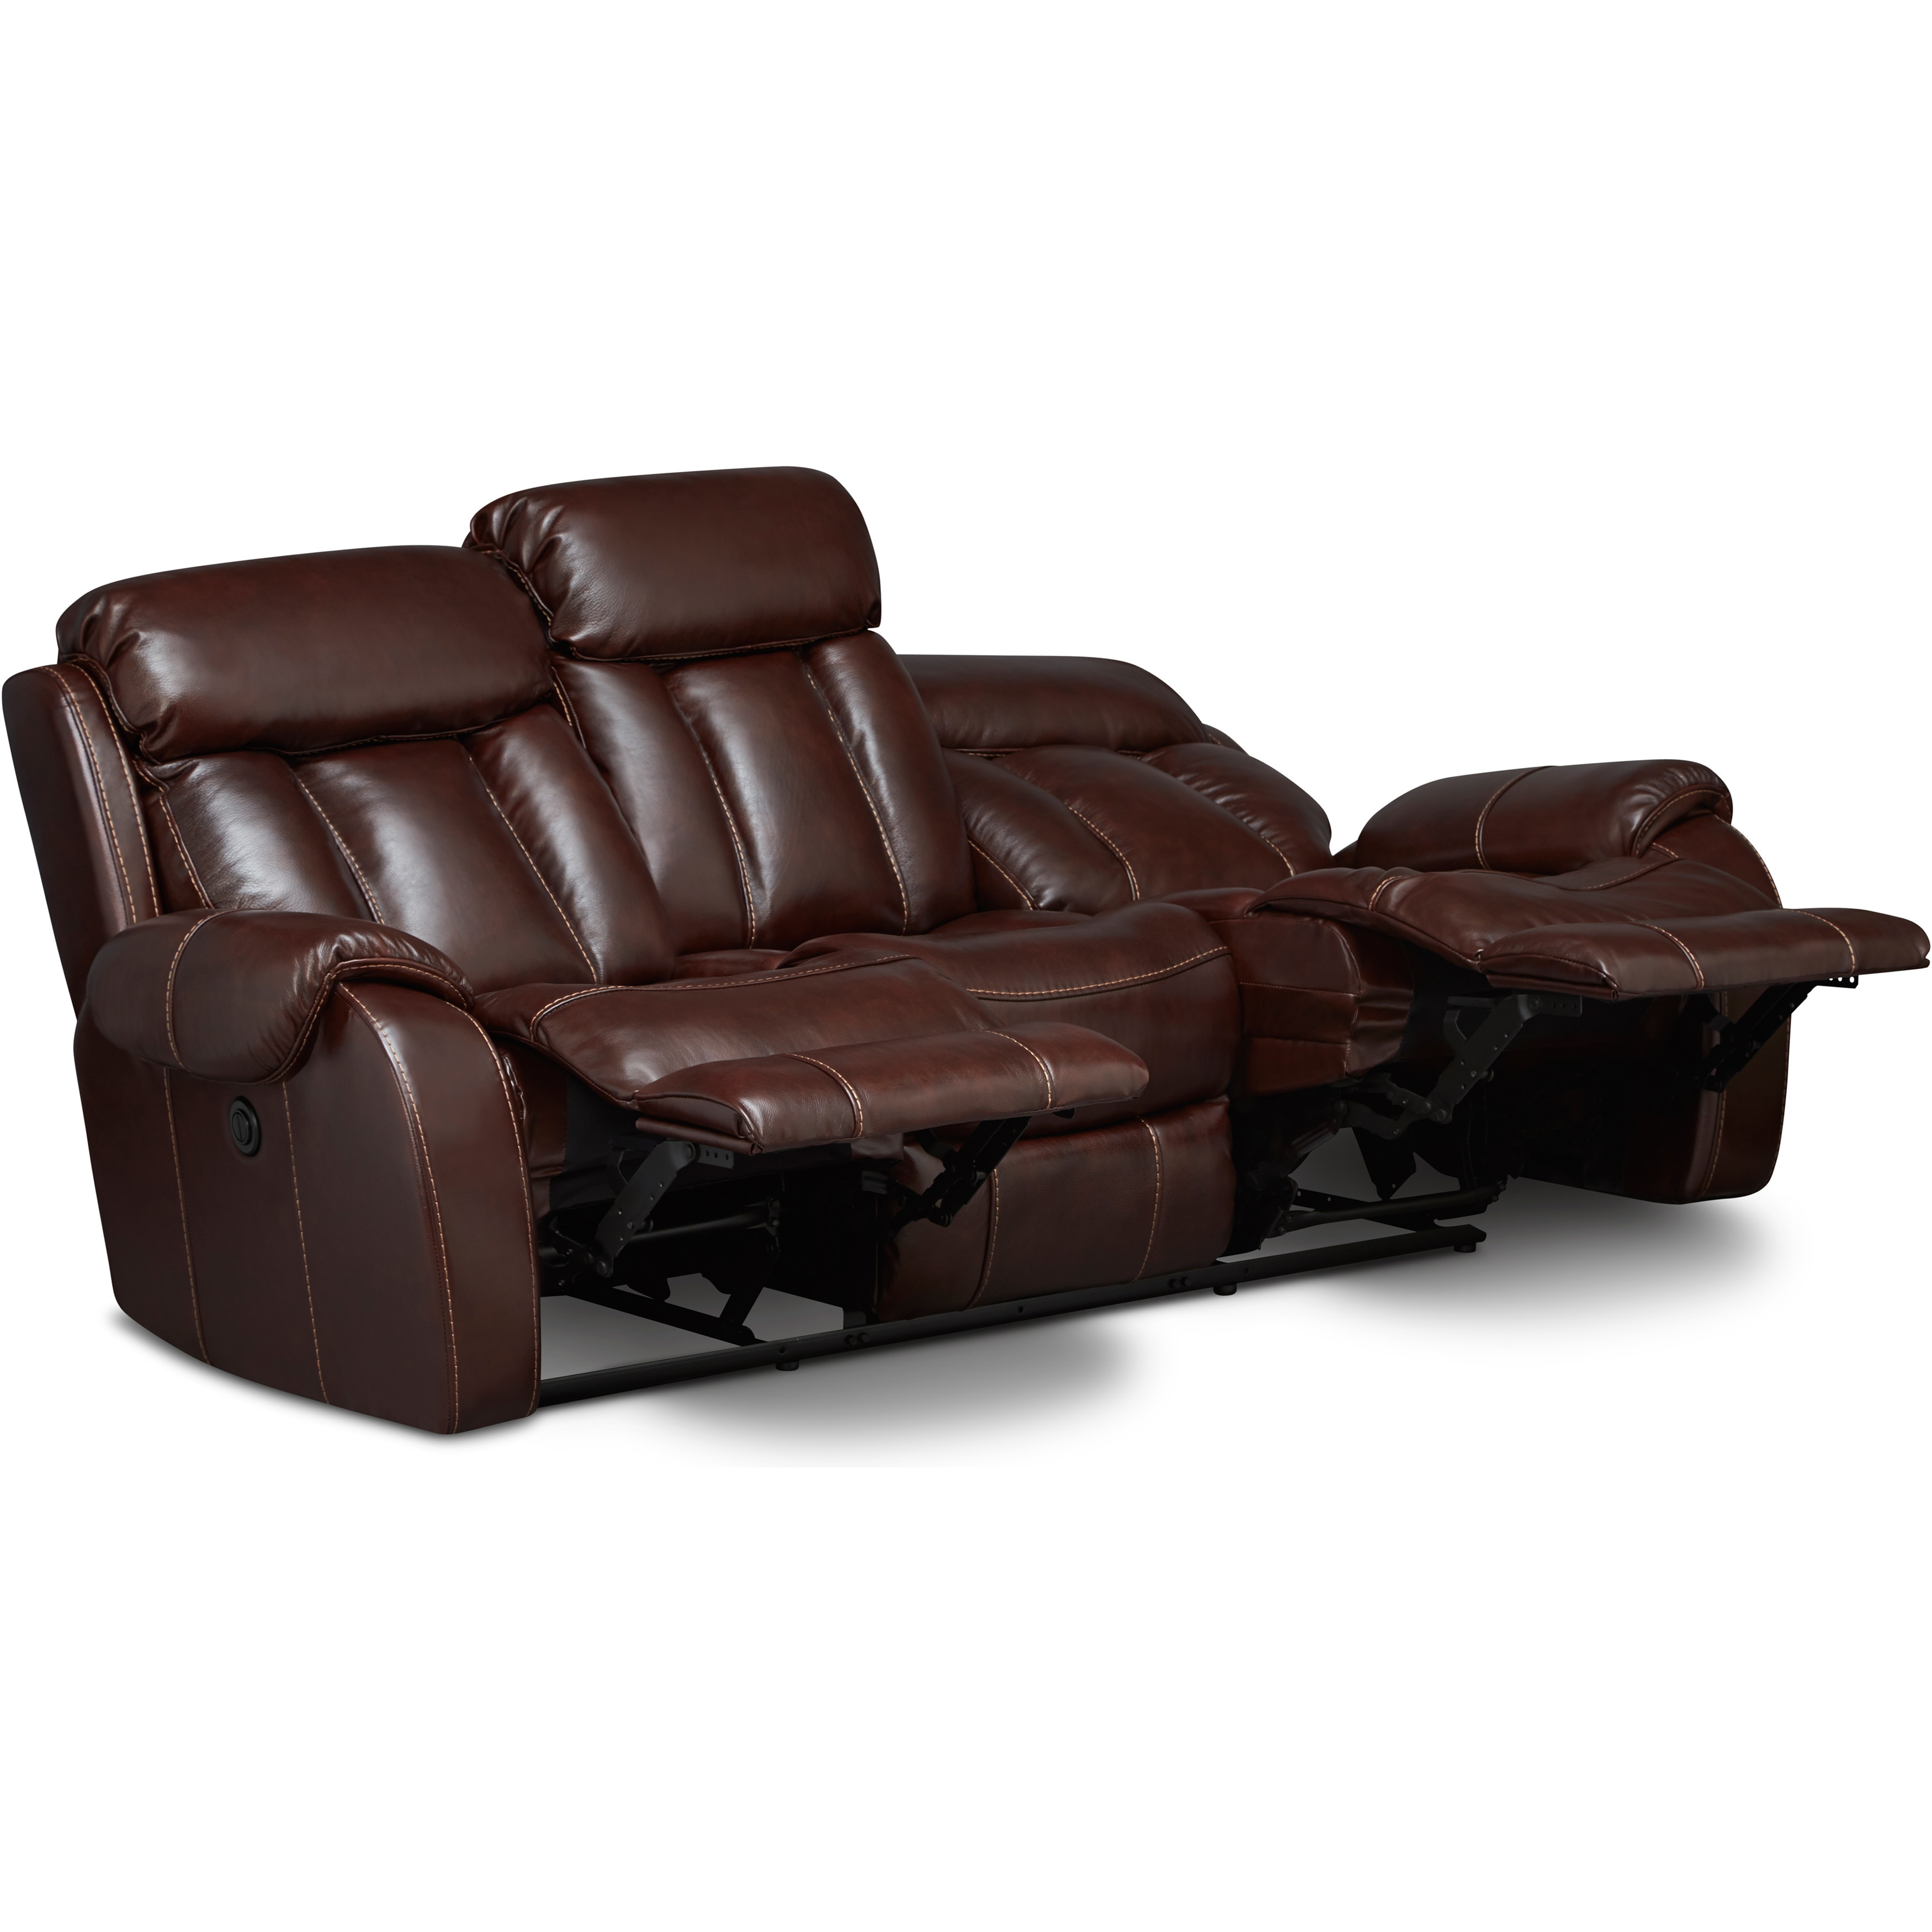 Super Art Van Bronson Burgundy Leather Power Reclining Sofa Uwap Interior Chair Design Uwaporg